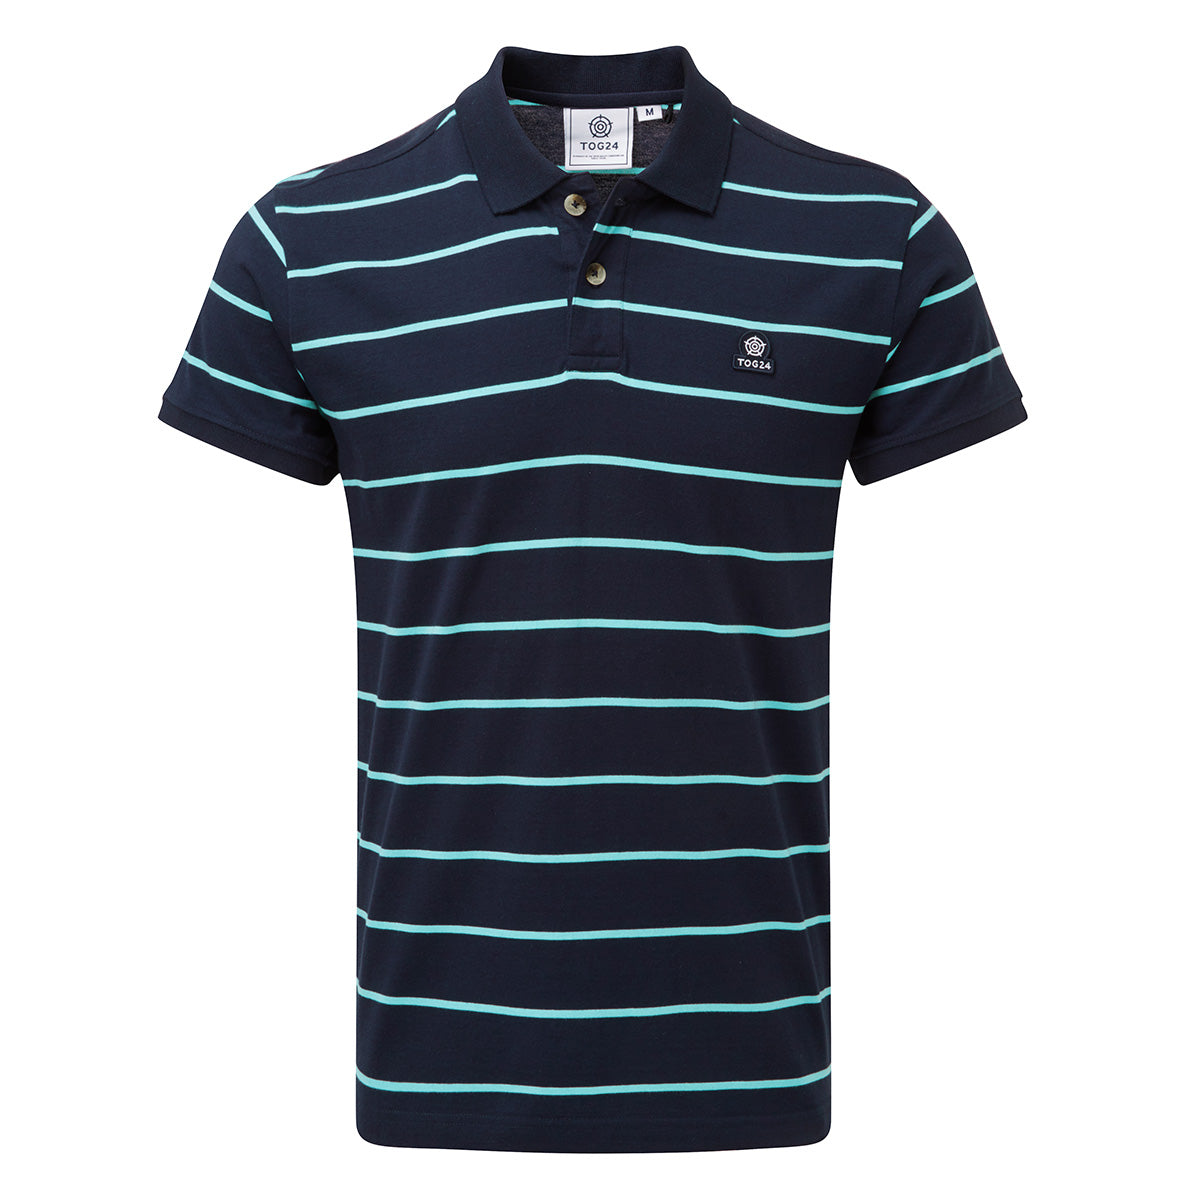 Alfie Mens Stripe Polo Shirt - Navy image 4